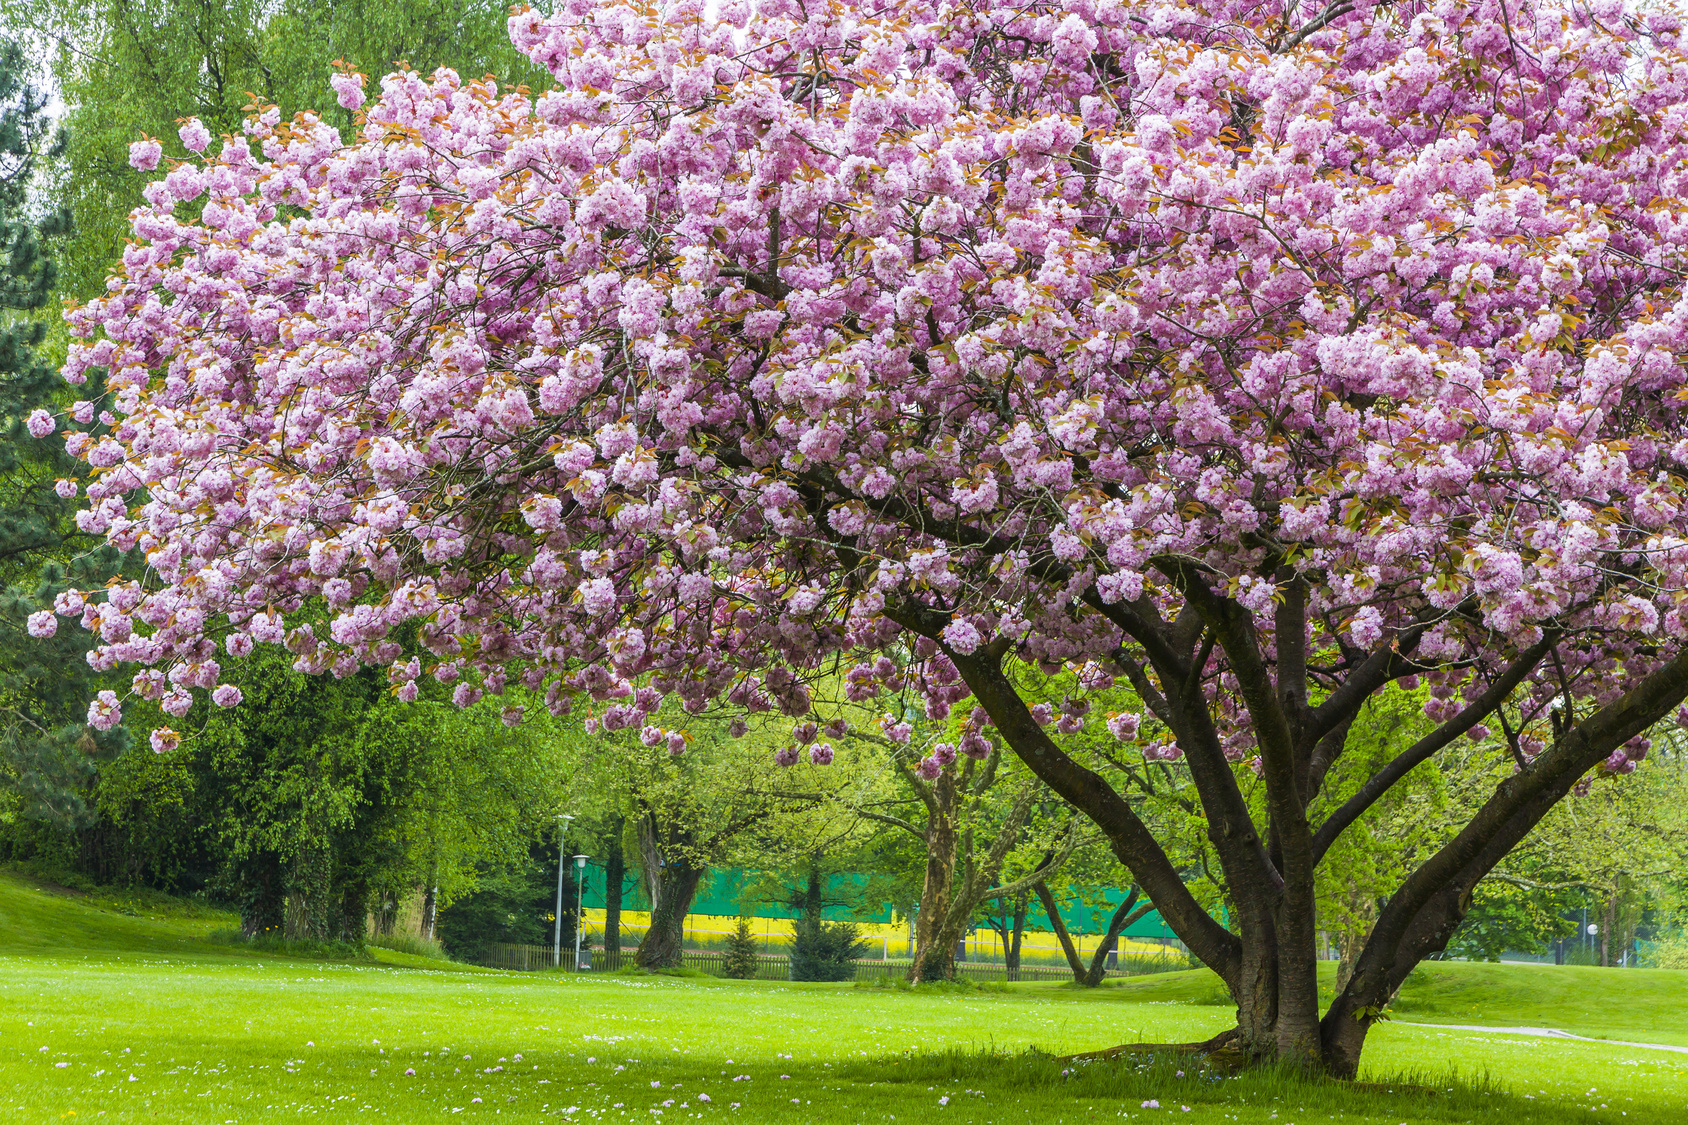 Additional Tree Disease Resources (2015) - Tree Service Company Springfield MO